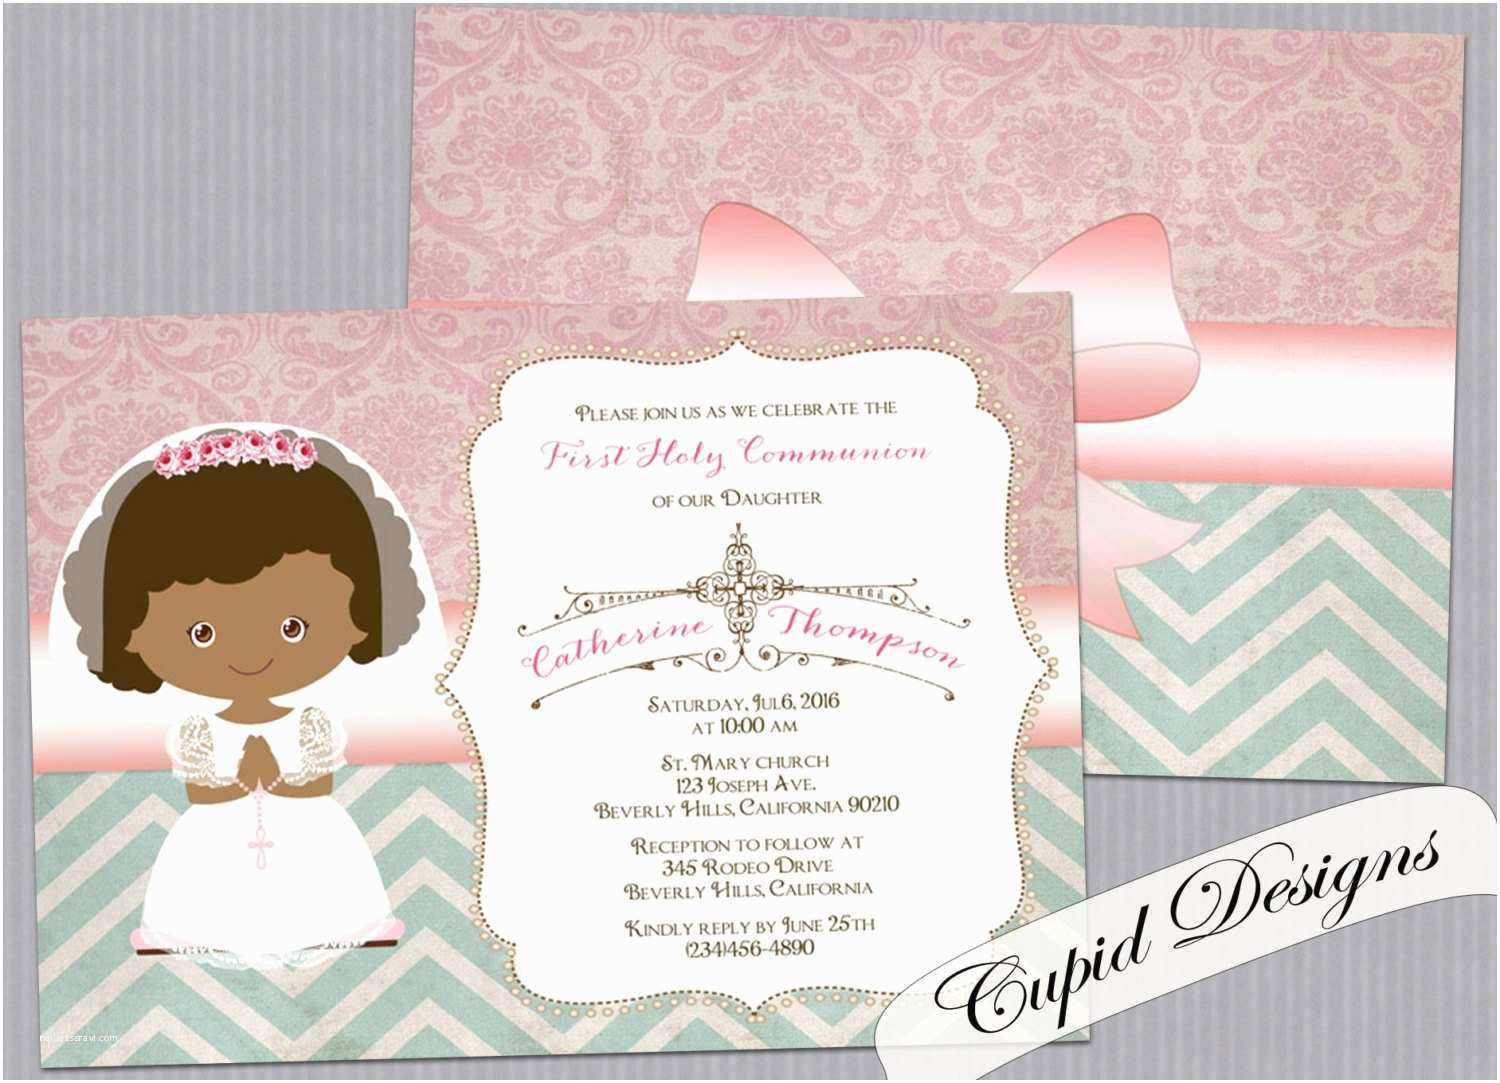 Communion Invitations for Girl First Holy Munion Invitation Cards Girl First Munion